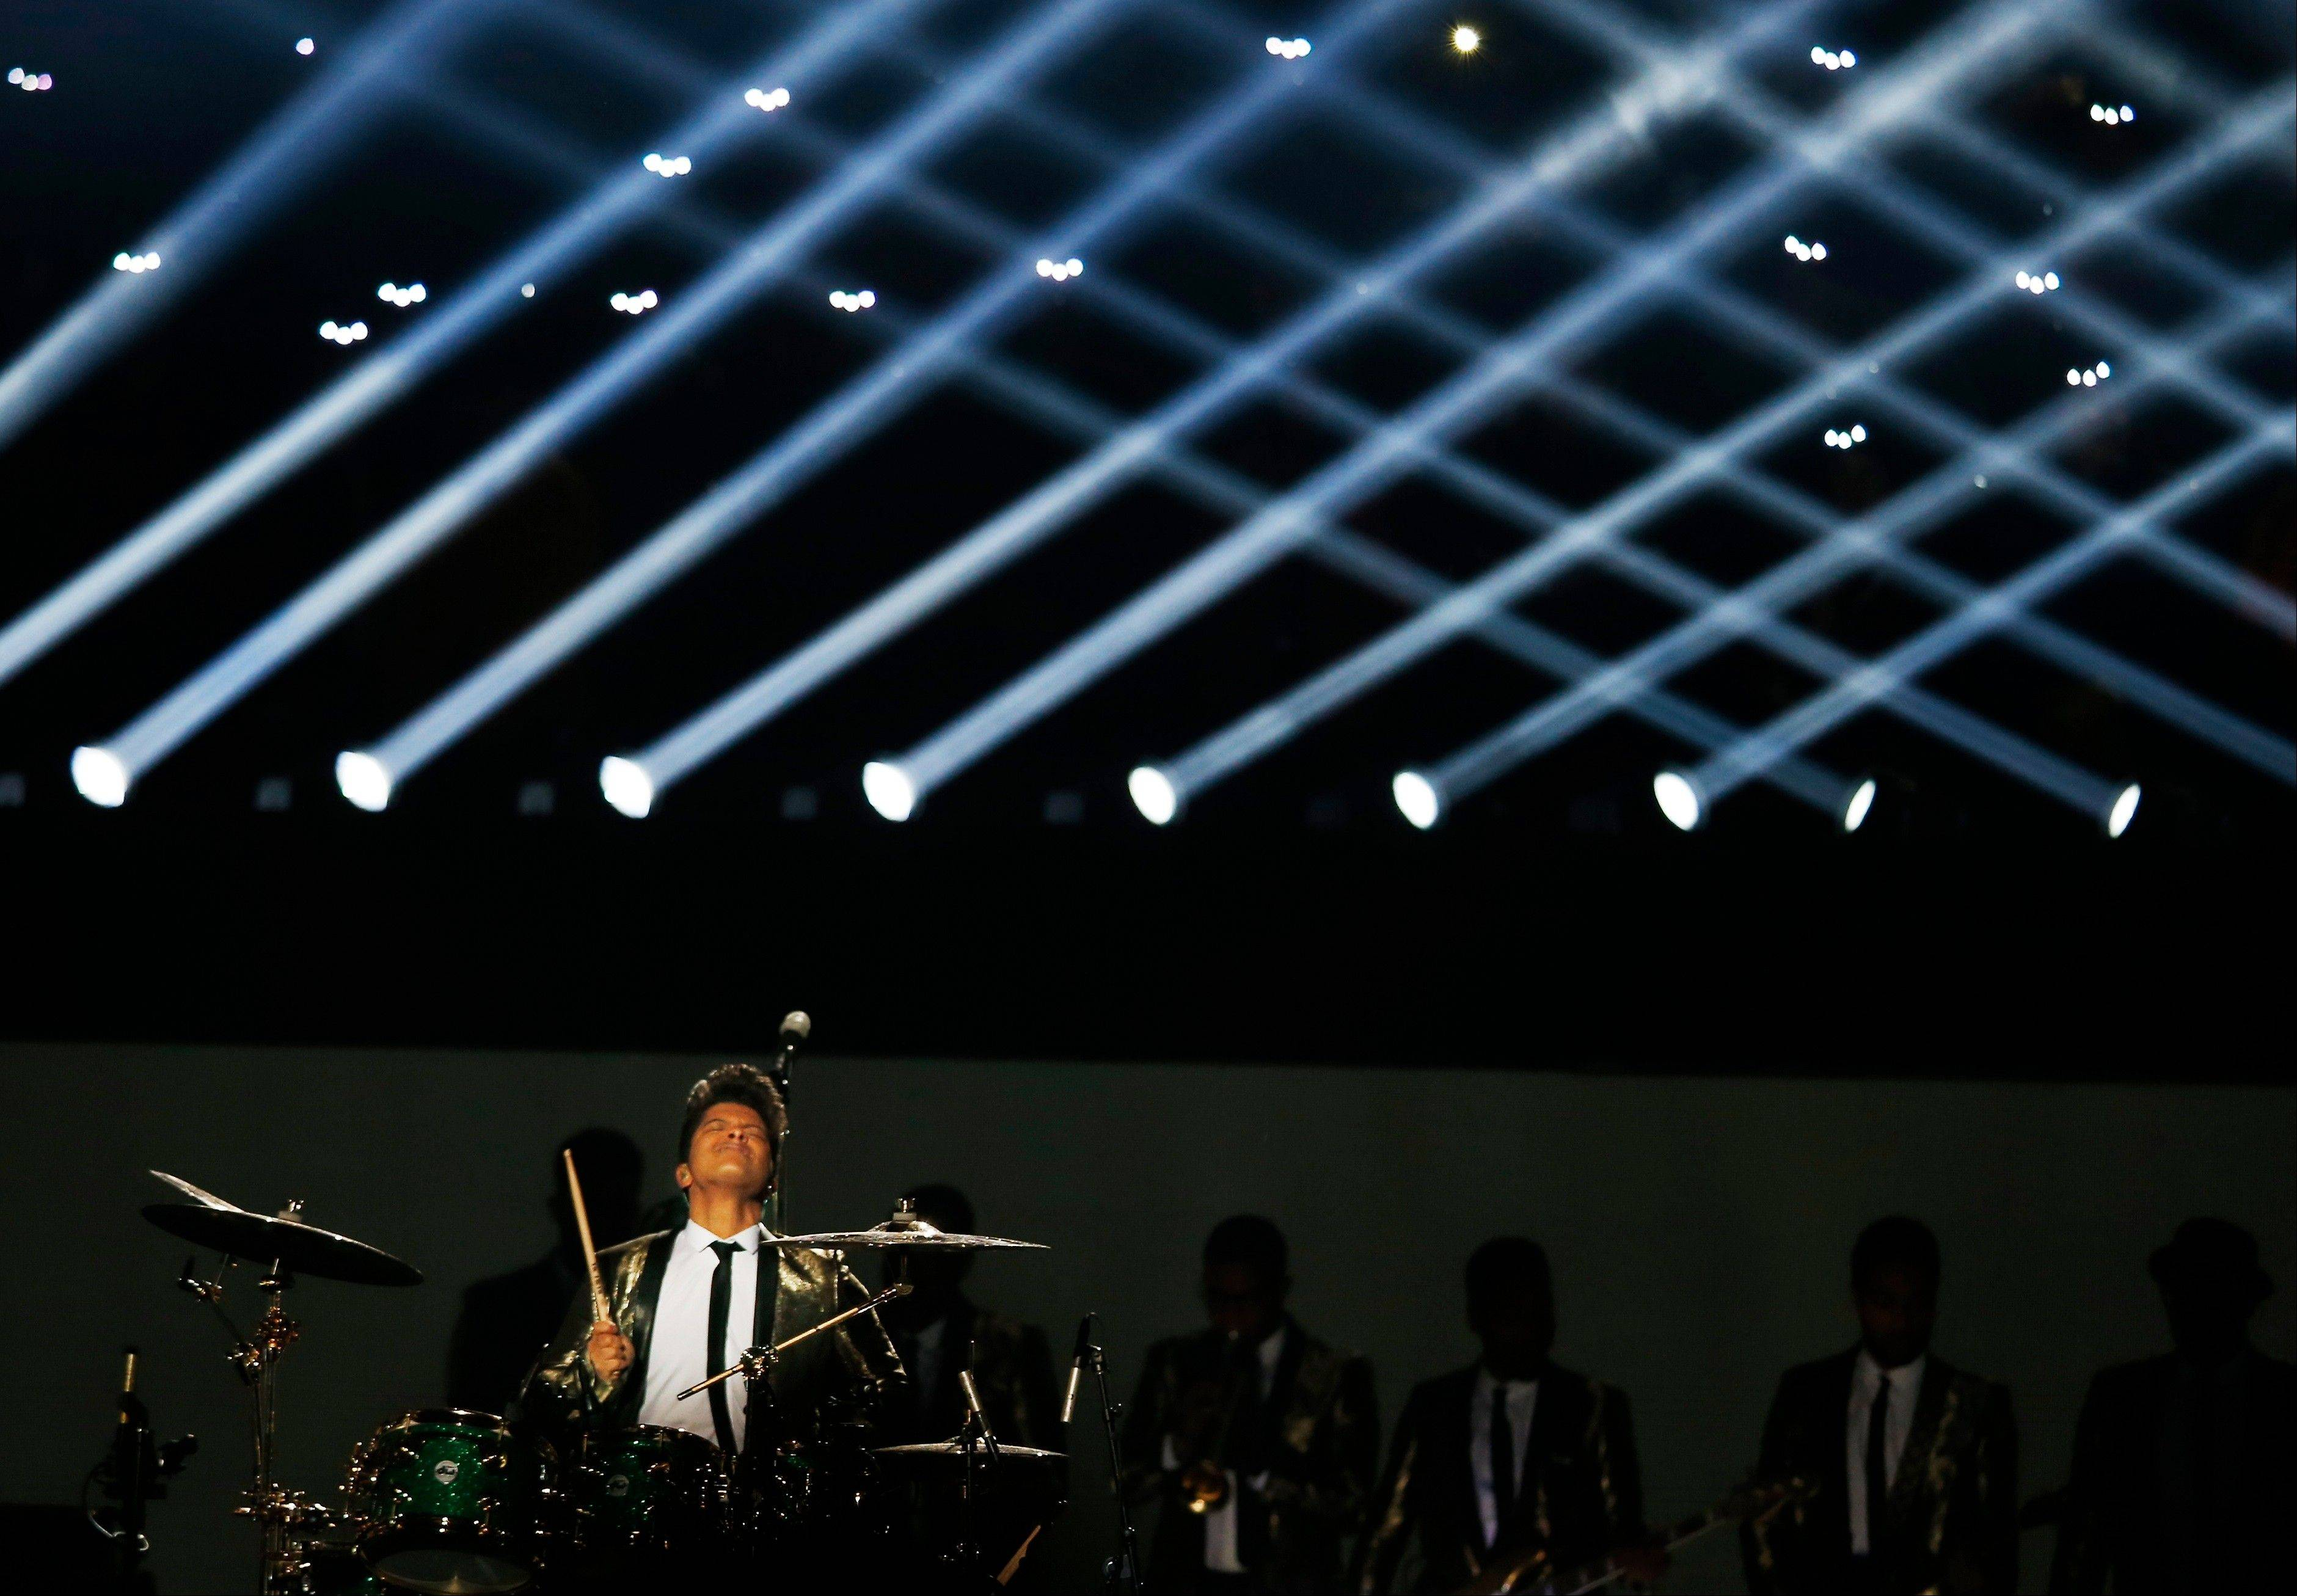 Bruno Mars performs during the halftime show of the NFL Super Bowl XLVIII football game between the Seattle Seahawks and the Denver Broncos Sunday, Feb. 2, 2014, in East Rutherford, N.J.